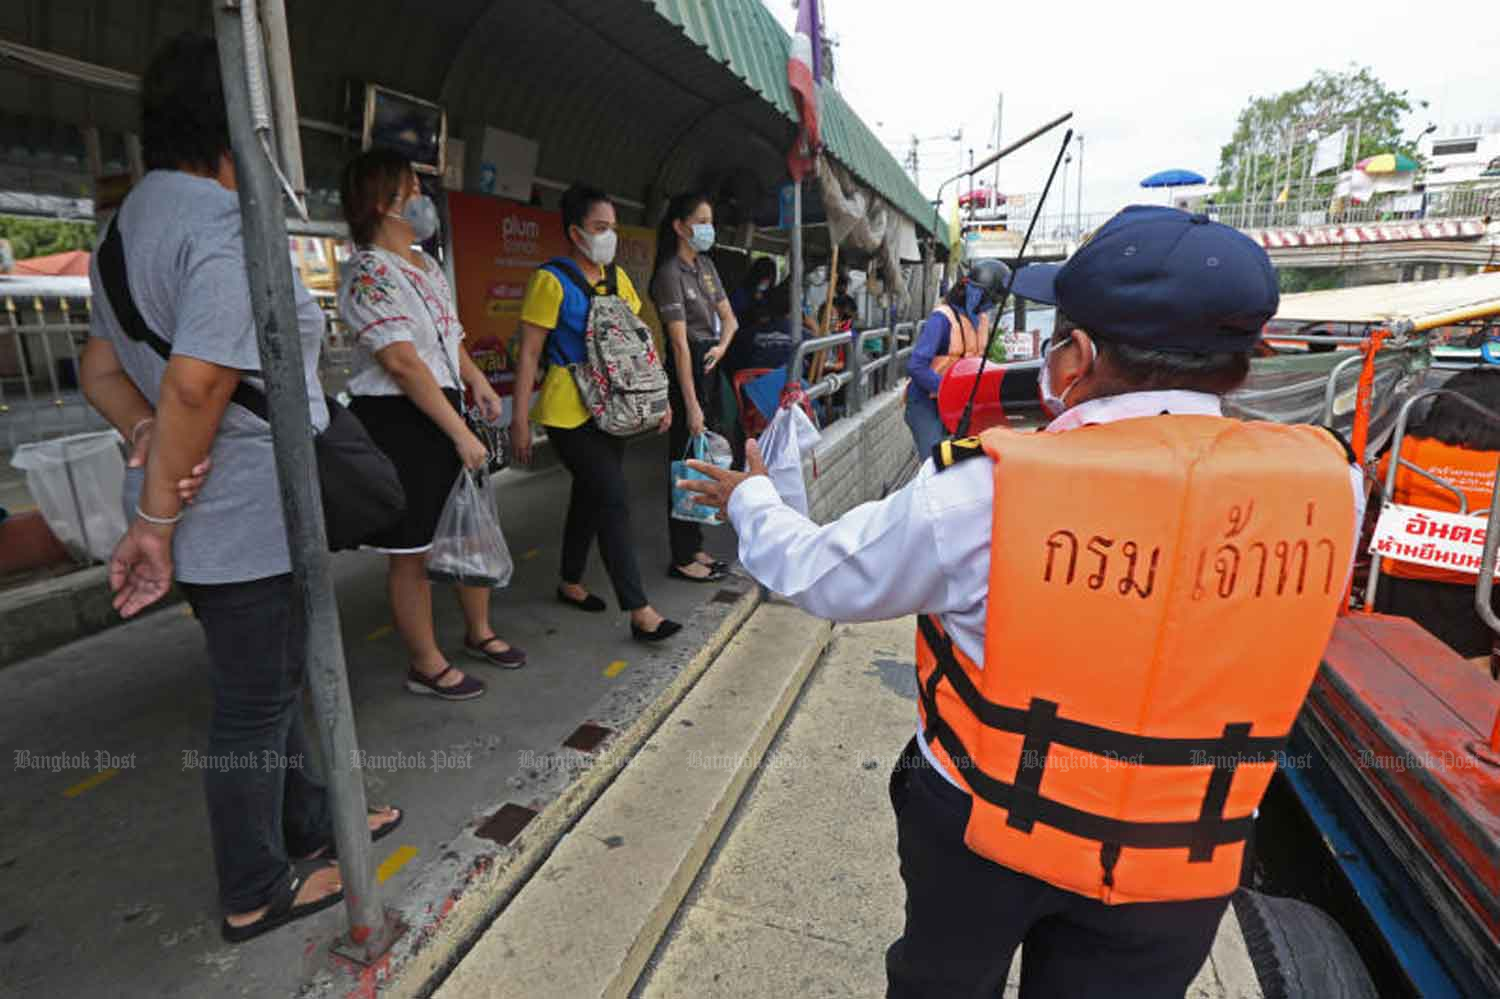 An official tells commuters to keep their distance from each other at the passenger boat pier in Bang Kapi district of Bangkok on Wednesday, when the government reported only 15 new cases of Covid-19 infection. Varuth Hirunyatheb